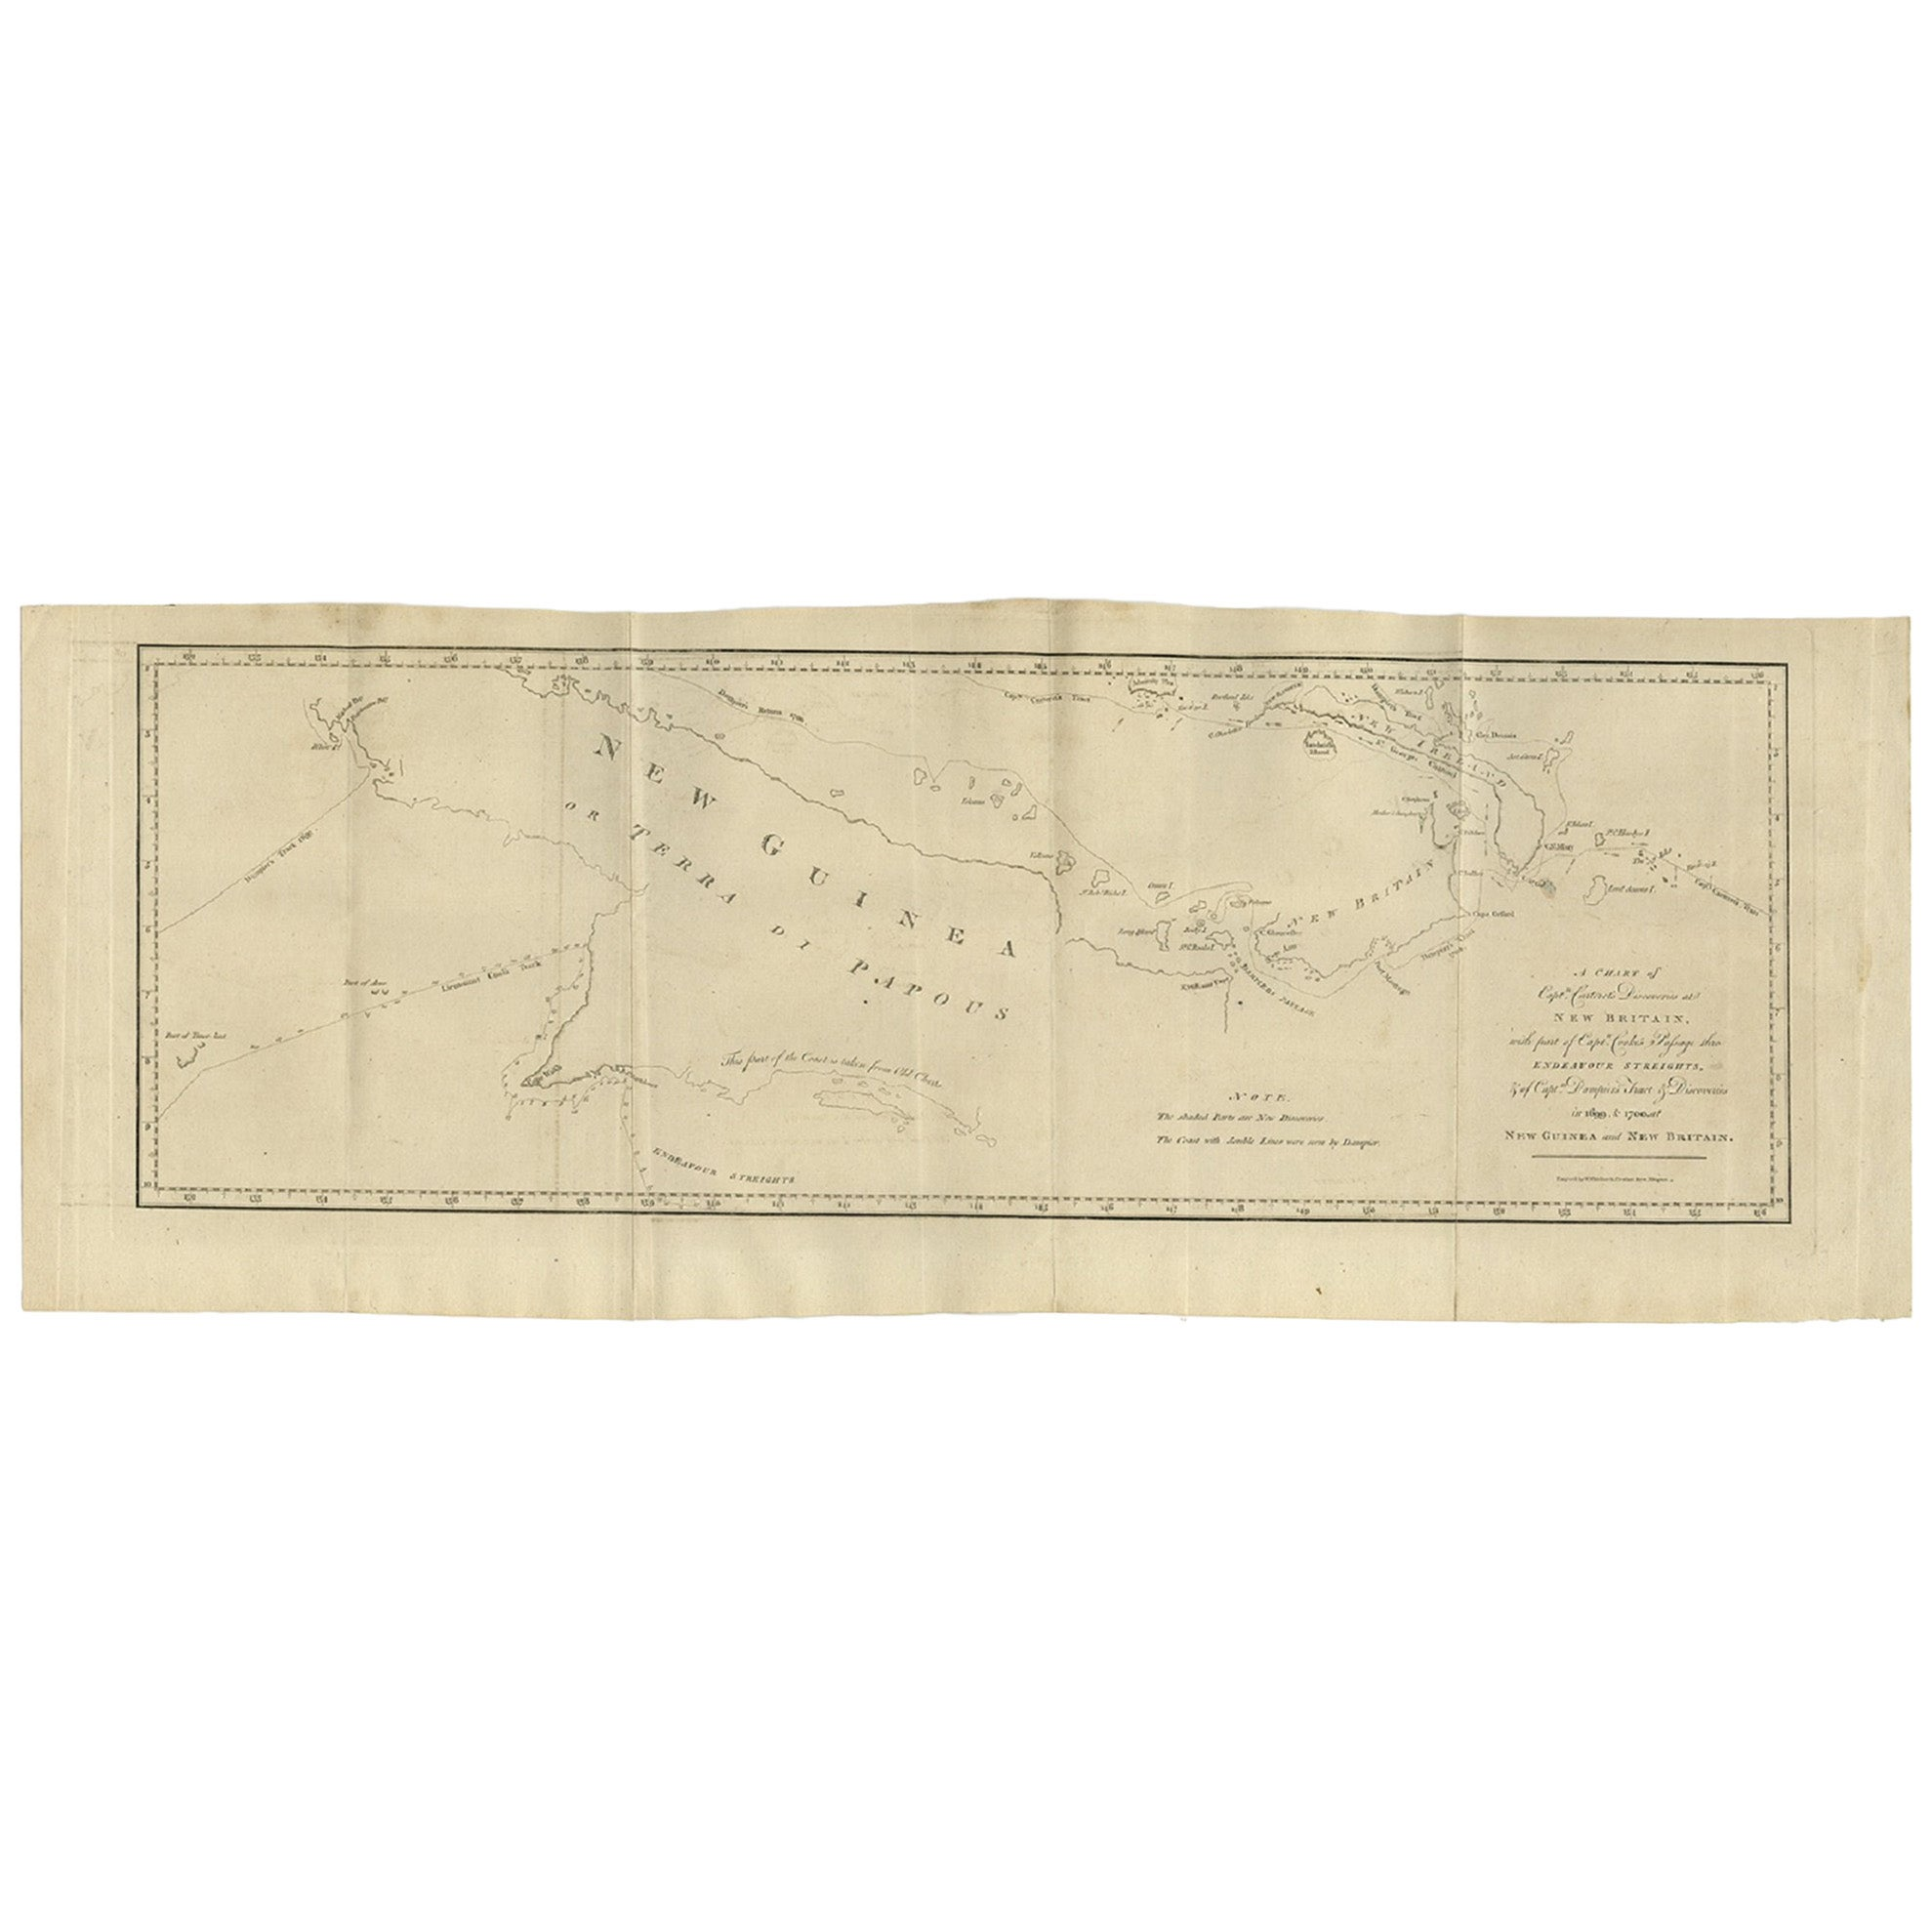 Antique Map of New Guinea and New Britain by P. Carteret, circa 1773